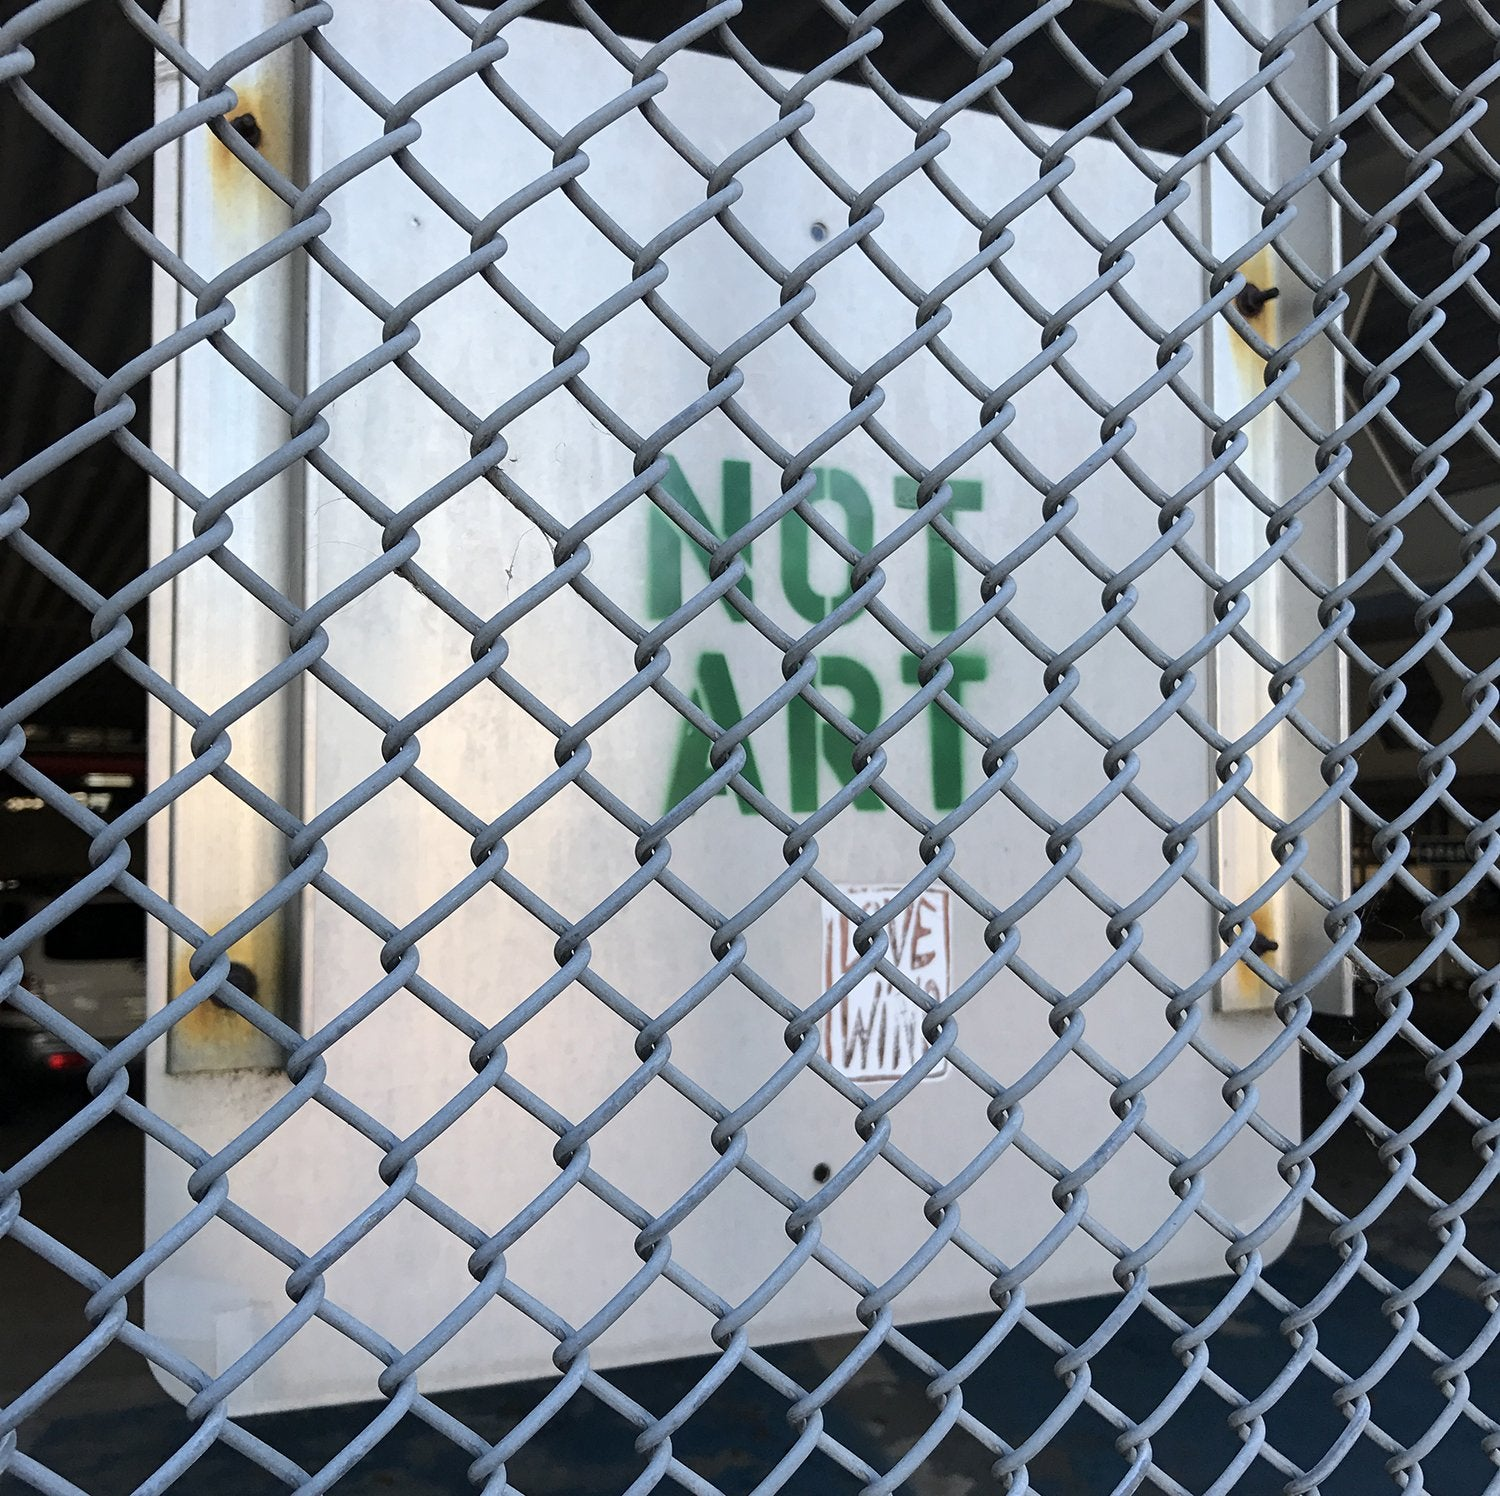 Not art...Love wins